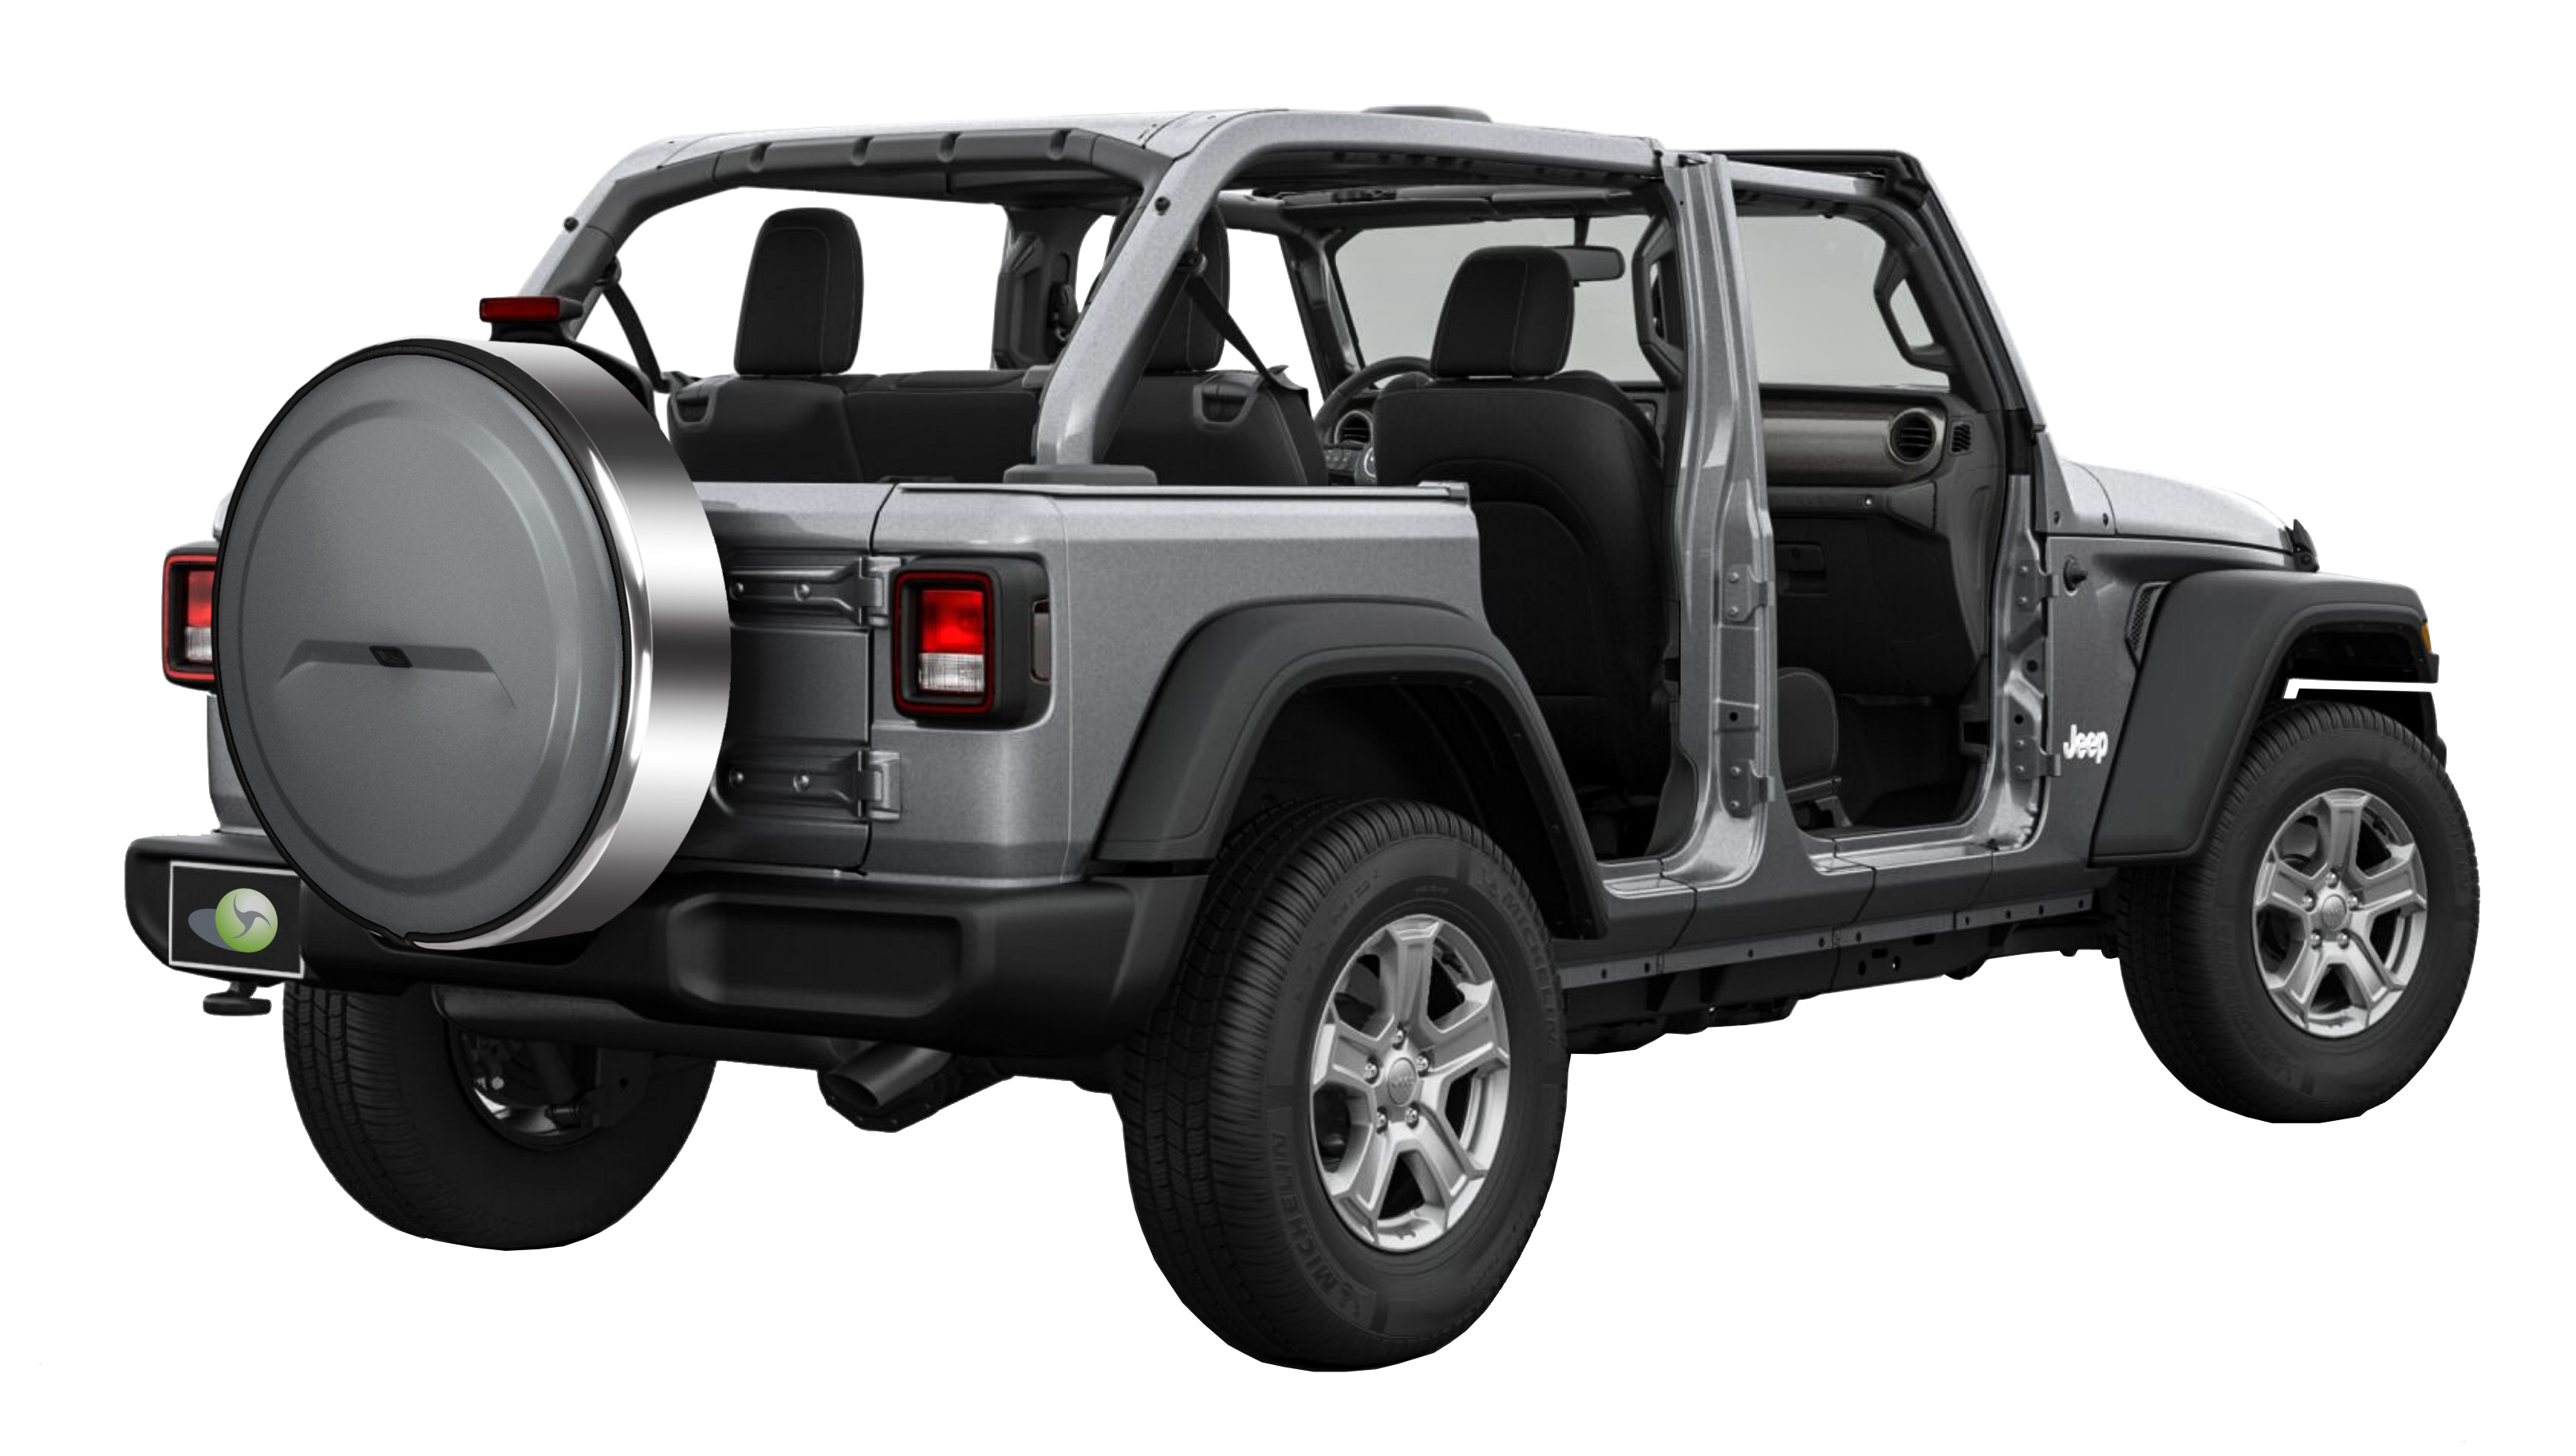 Jeep Wrangler Paint >> Boomerang Launches Tire Cover Line Designed for New Jeep Wrangler JL Backup Camera System